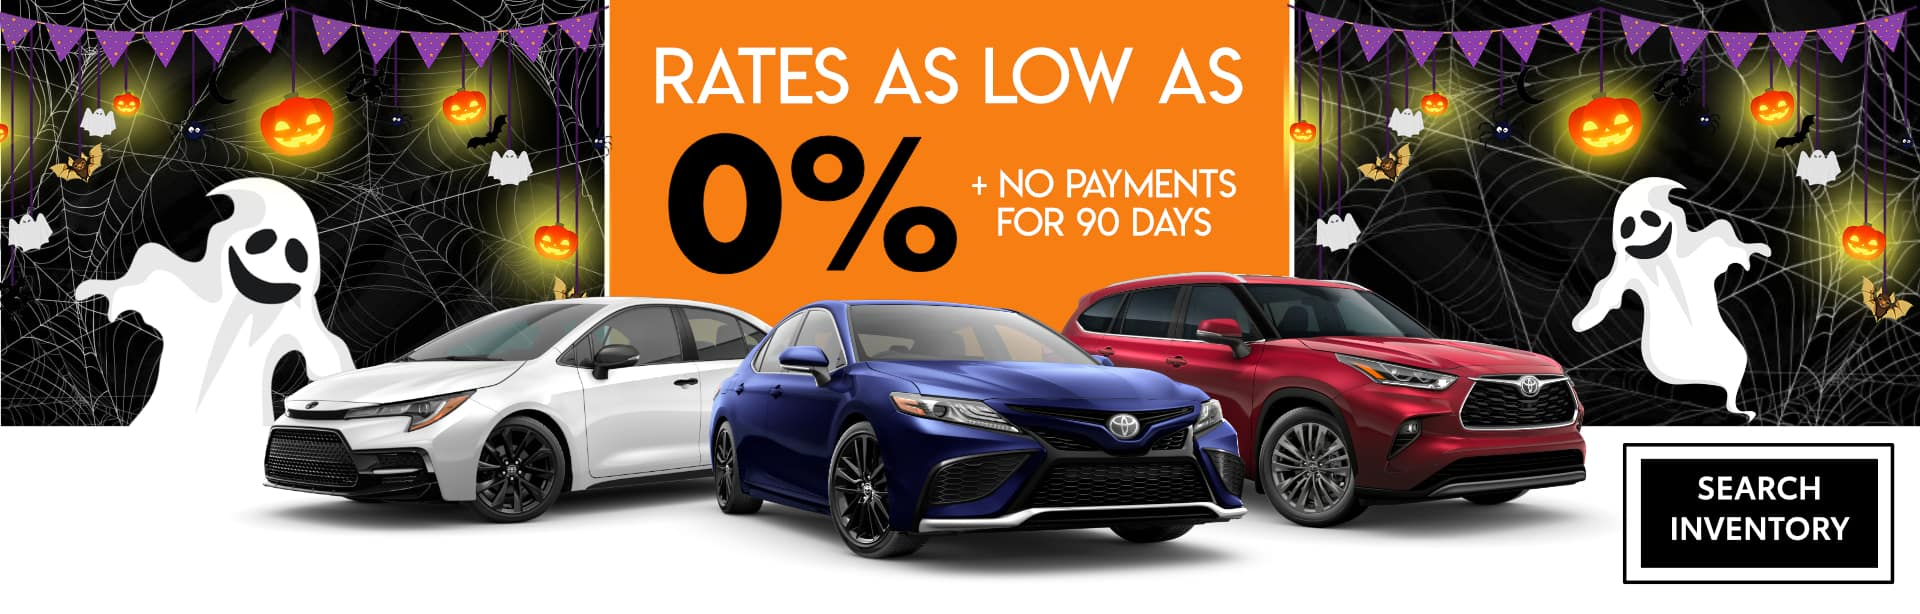 Oct 21 Low Rate